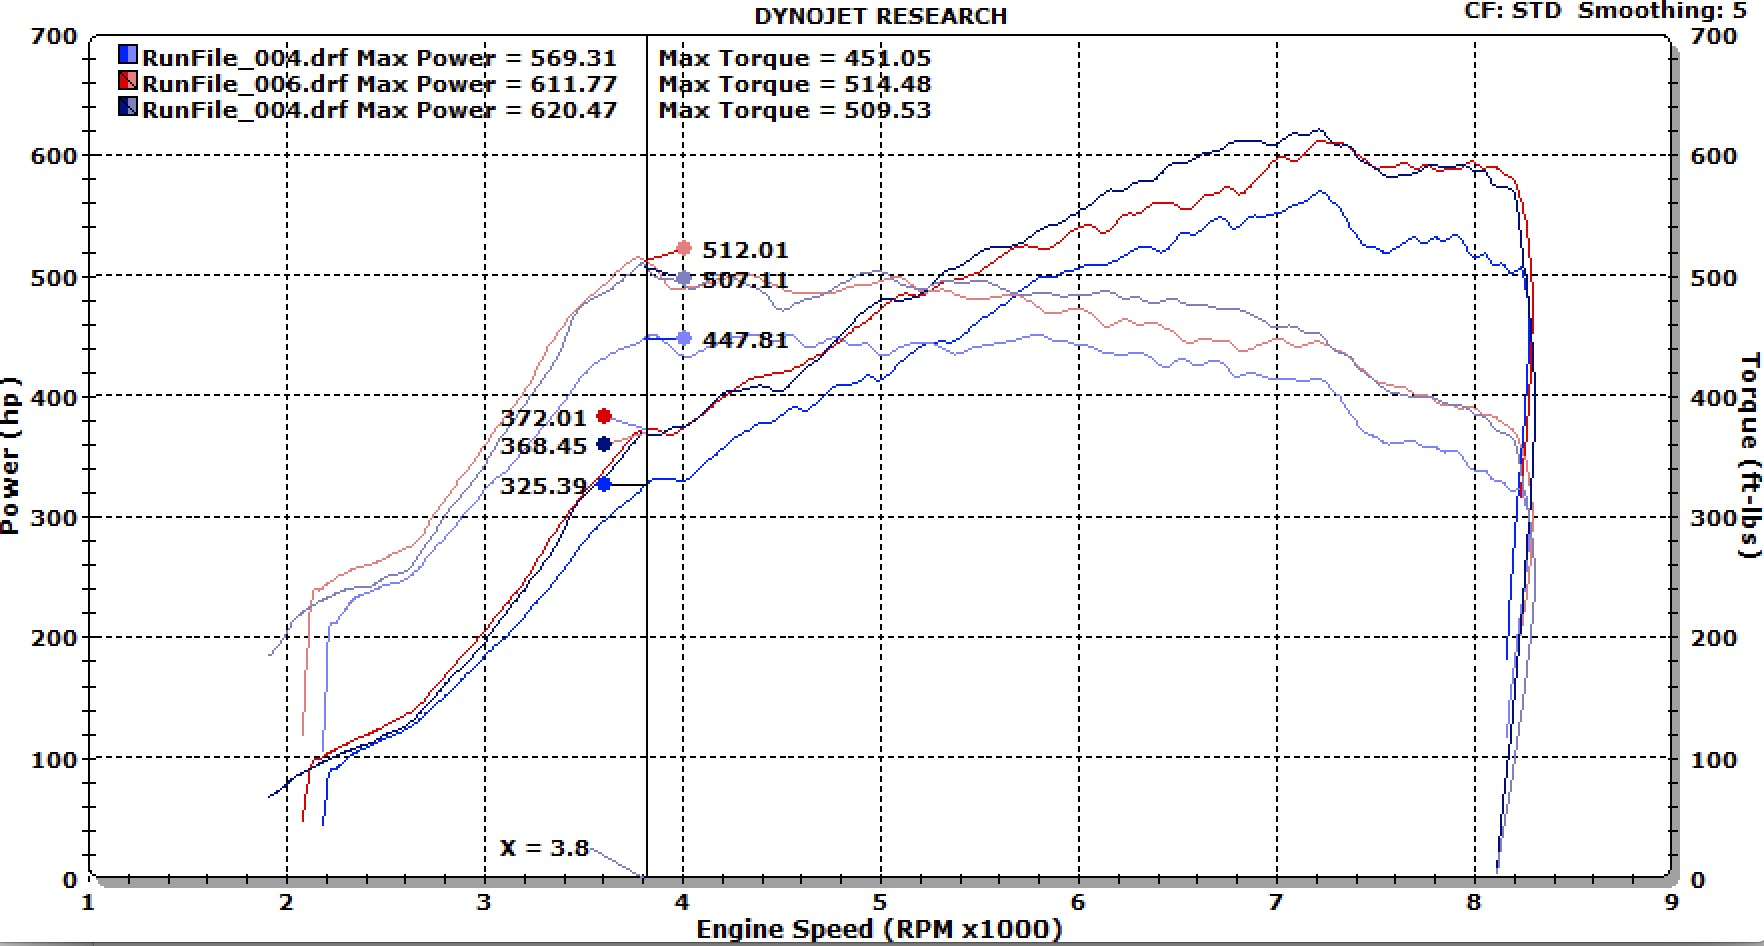 McLaren 650S Dyno Graph Results